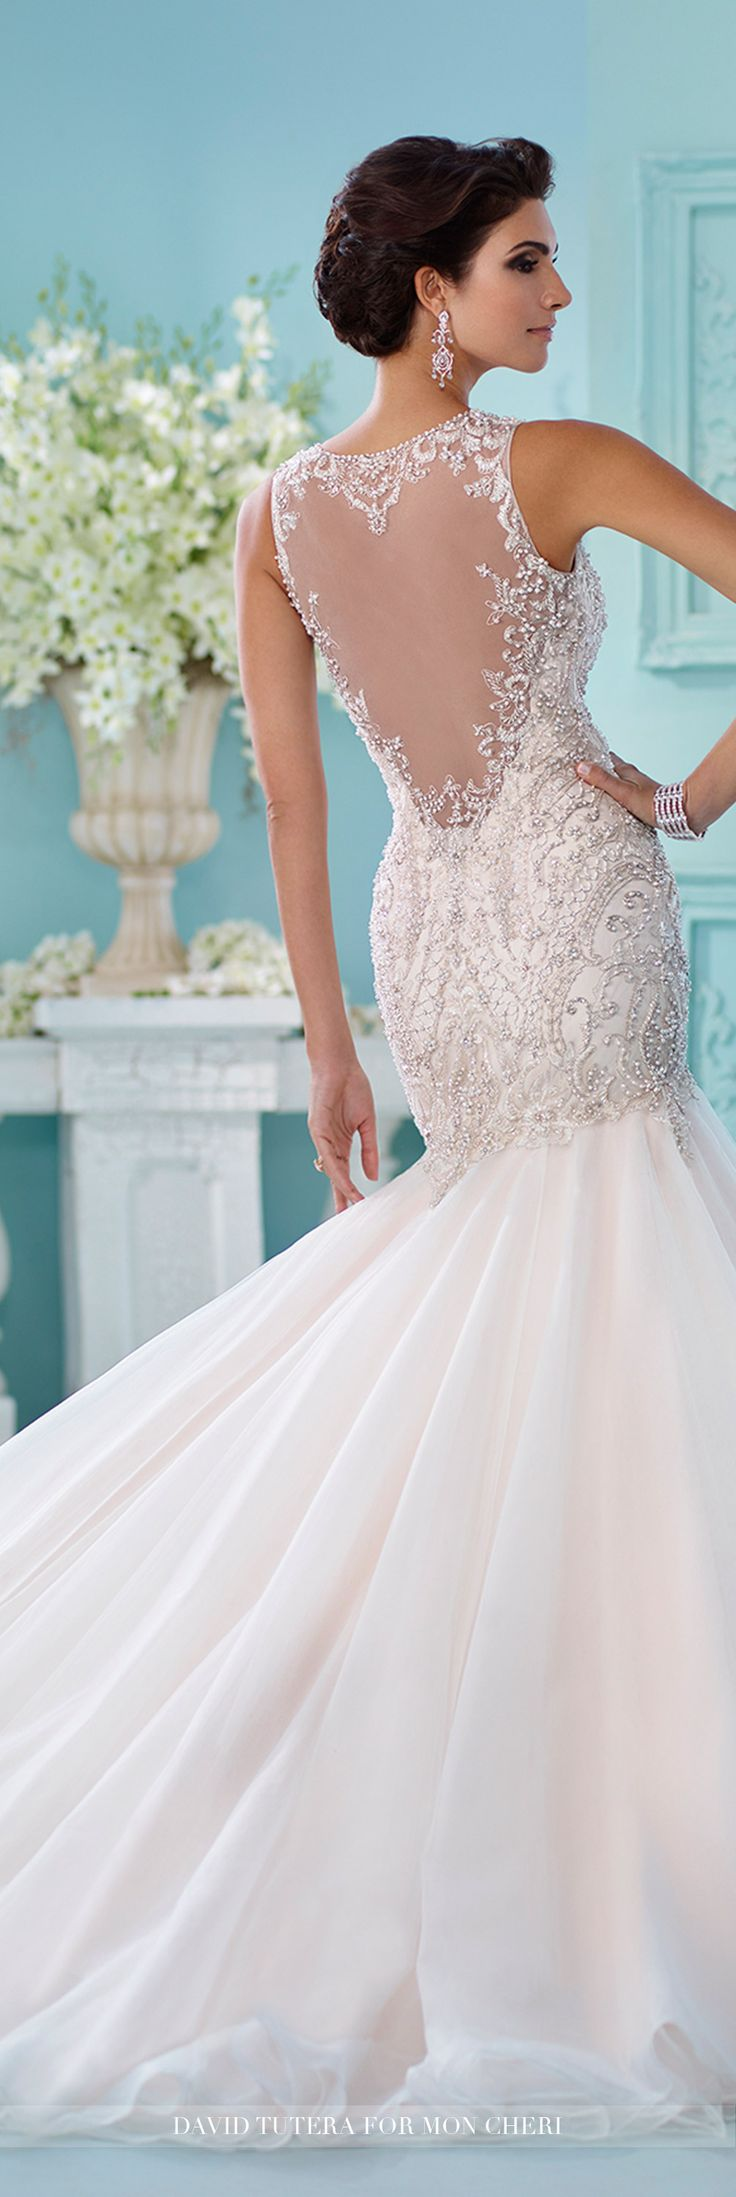 Funky Definition Gown Ornament - Wedding and flowers ispiration ...